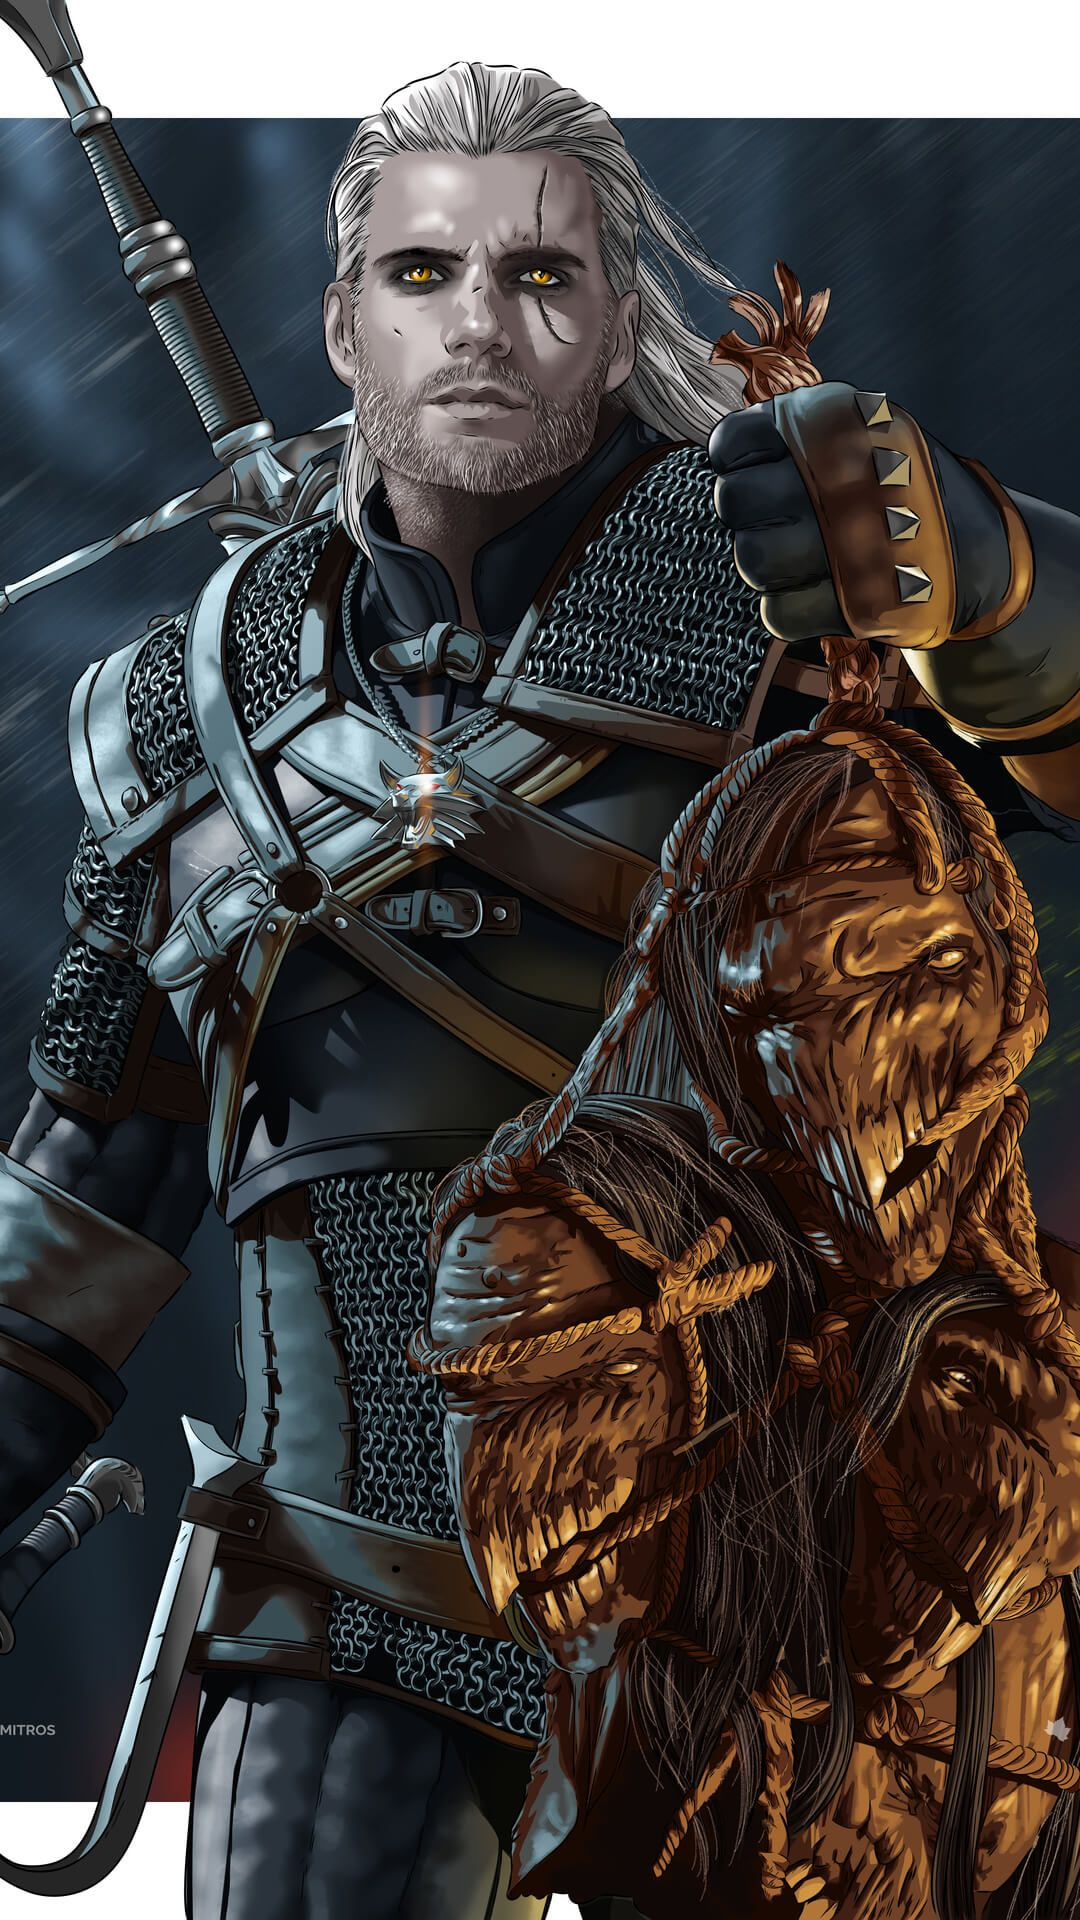 The Witcher 3 Plume De Monstre : witcher, plume, monstre, Witcher, Wallpapers, Phone, Background, Mobile, Geralt, Rivia,, Witcher,